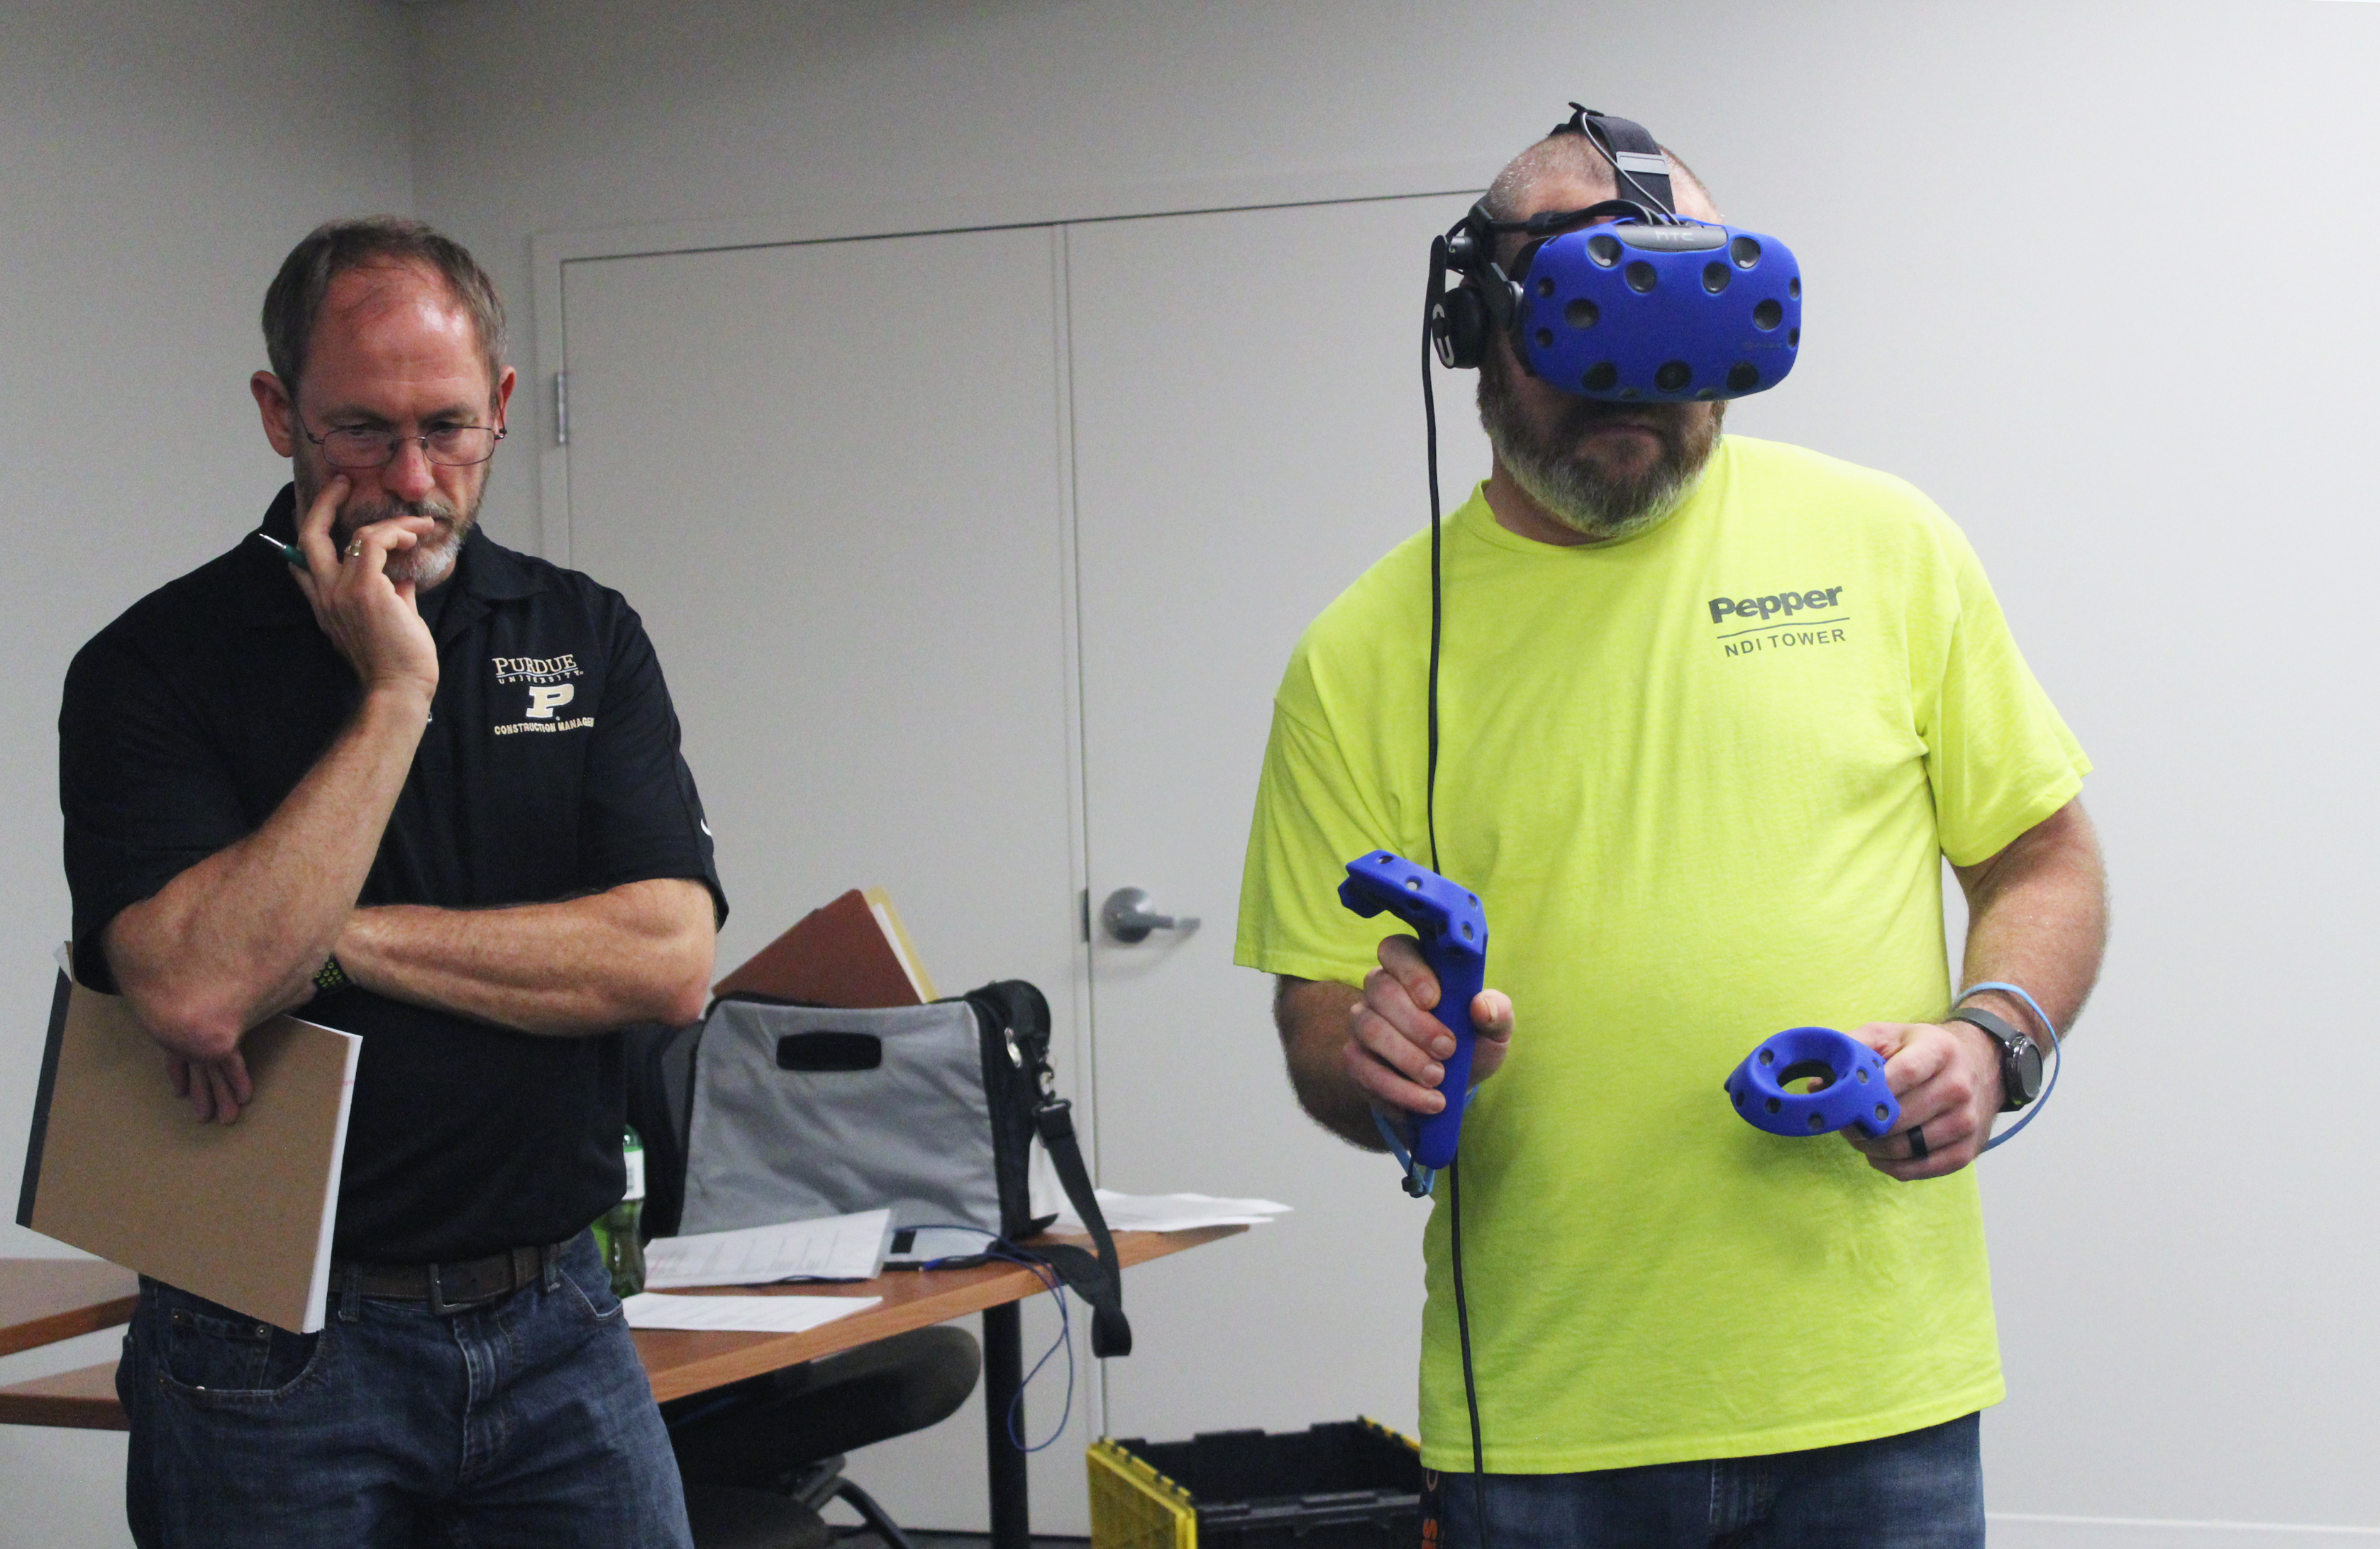 Pepper tests Purdue's VR safety modules